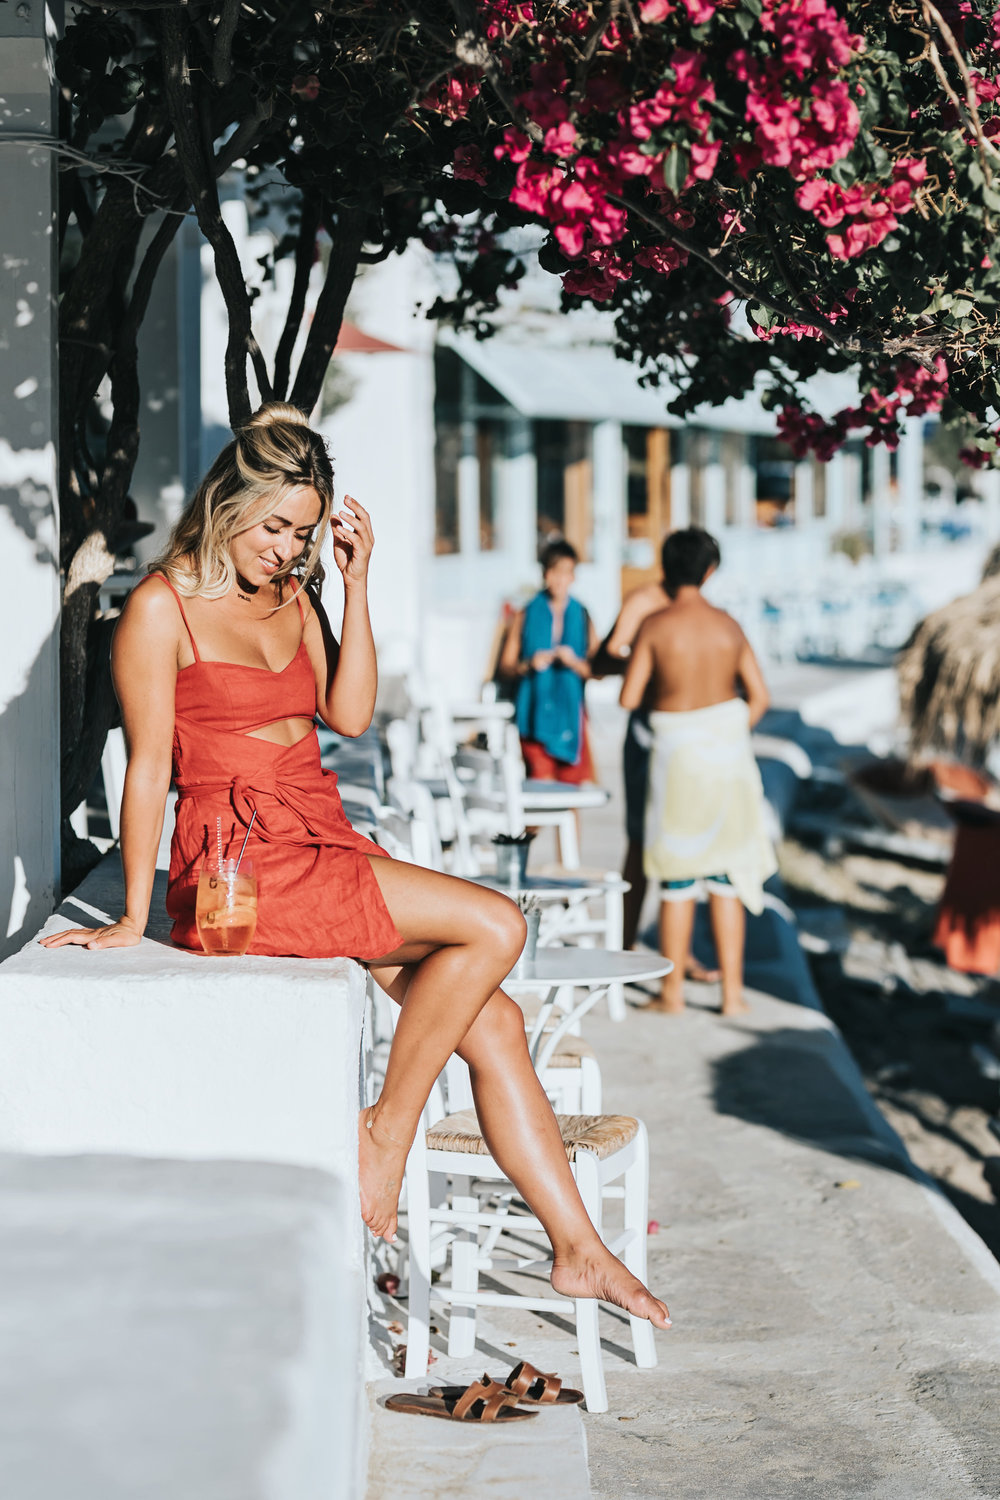 Photos by Allison Kuhl Majorelle Dress from Revolve| Faithfull The Brand Swimsuit | Reformation Dress, Solodus Heels, CJxMA Melanie Auld Hoop Earrings | Beach Riot Swimsuit | Reformation Dress